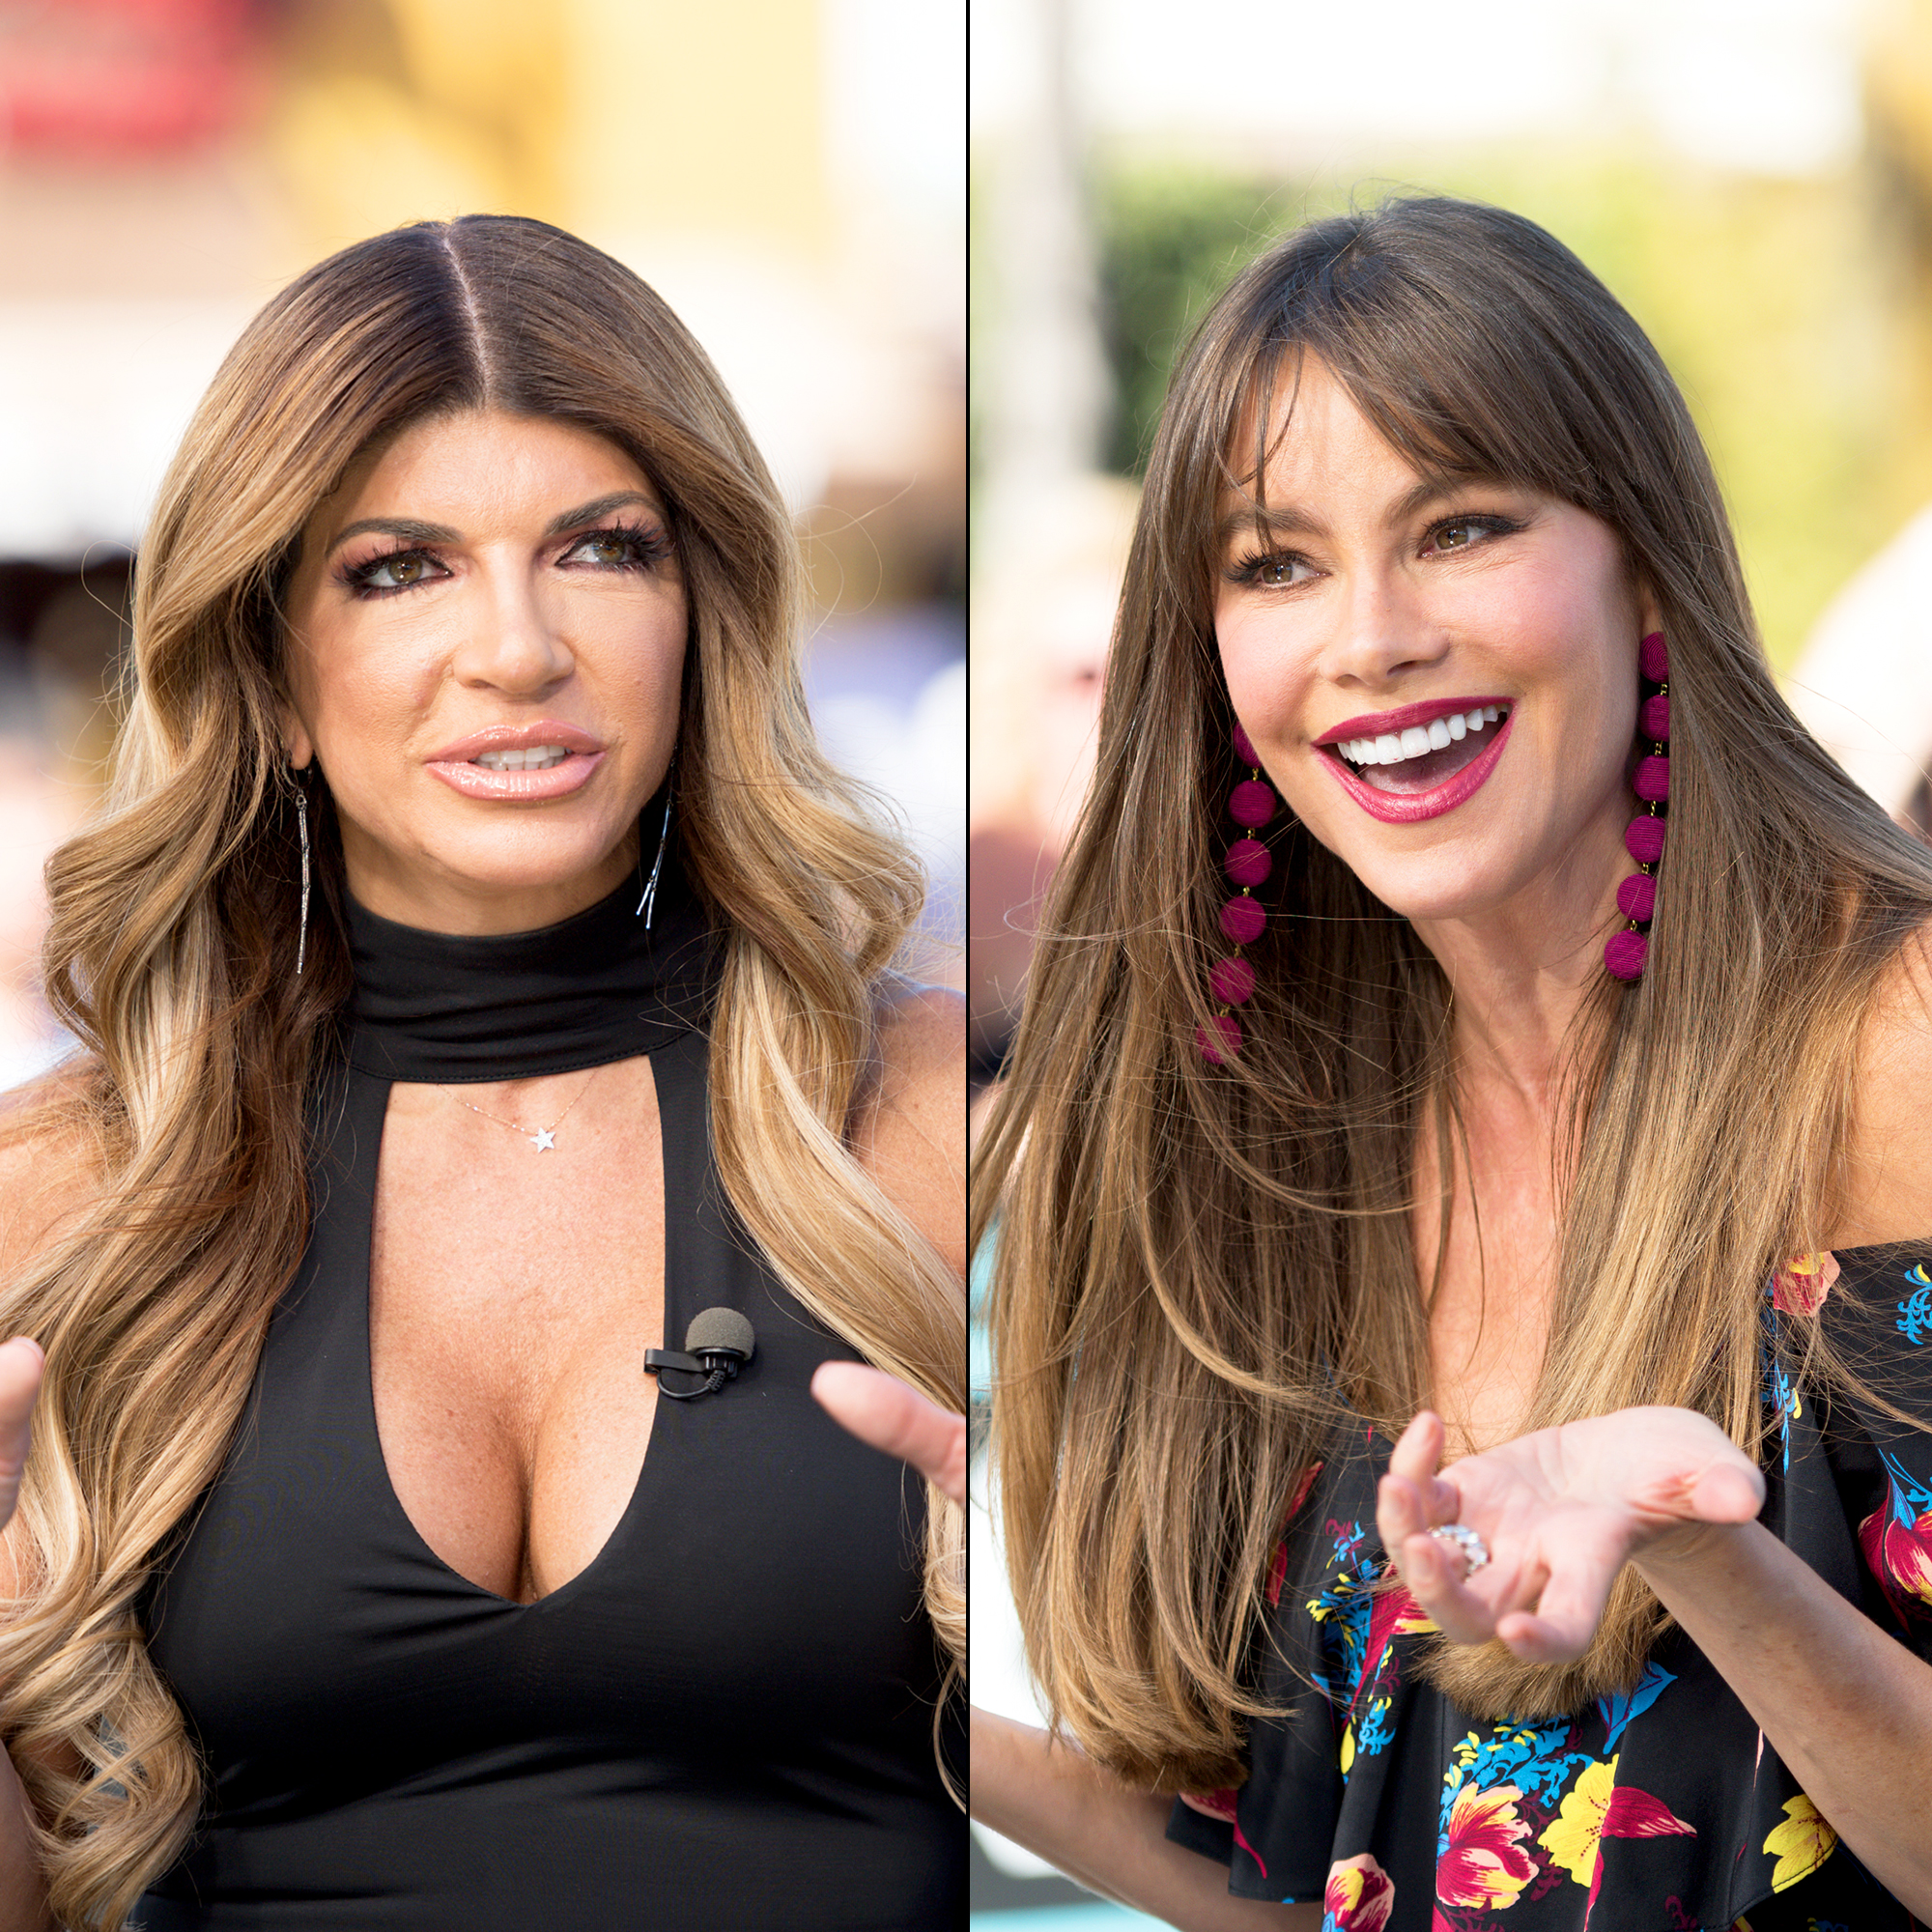 Real Housewives star Teresa Giudice bashes actress Sofia Vergara